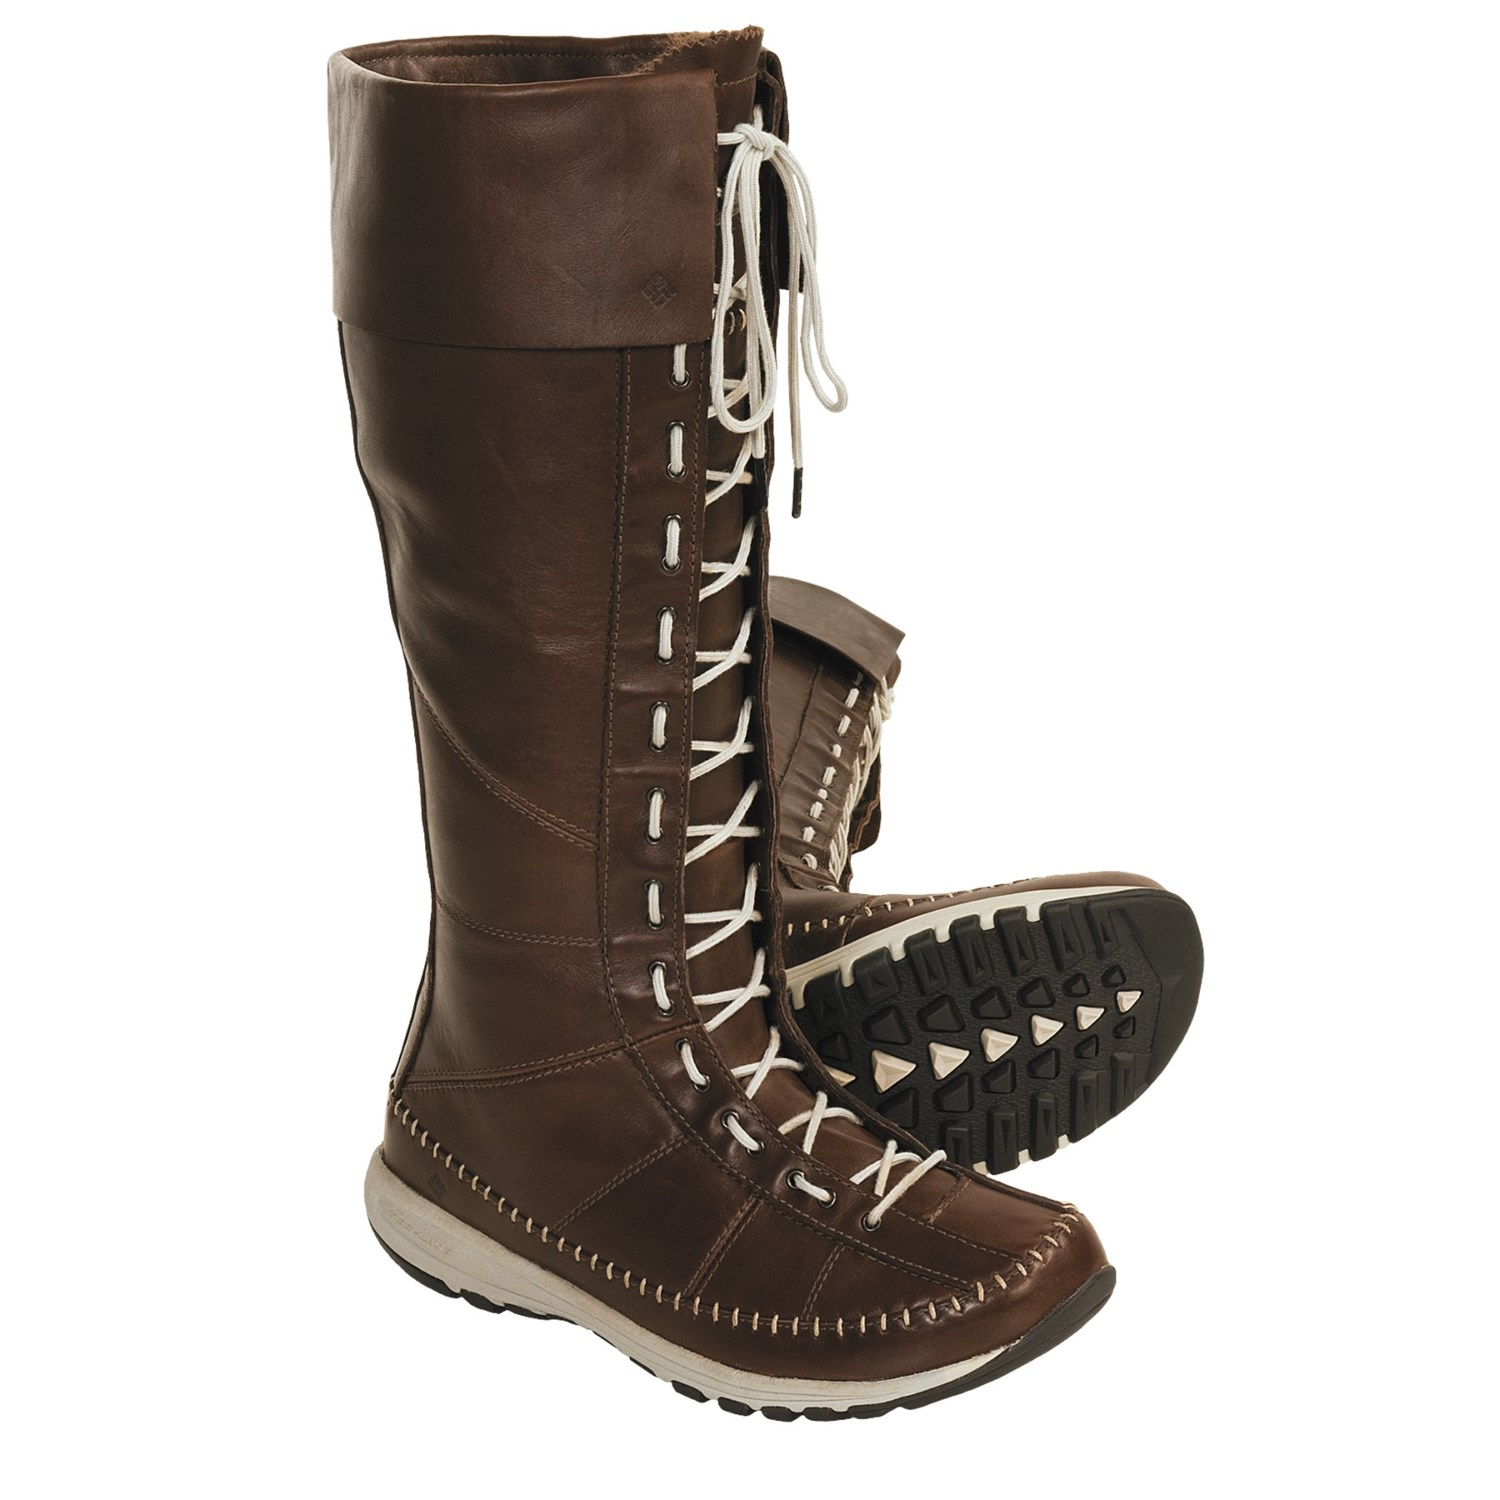 Women's Leather Snow Boots | Planetary Skin Institute